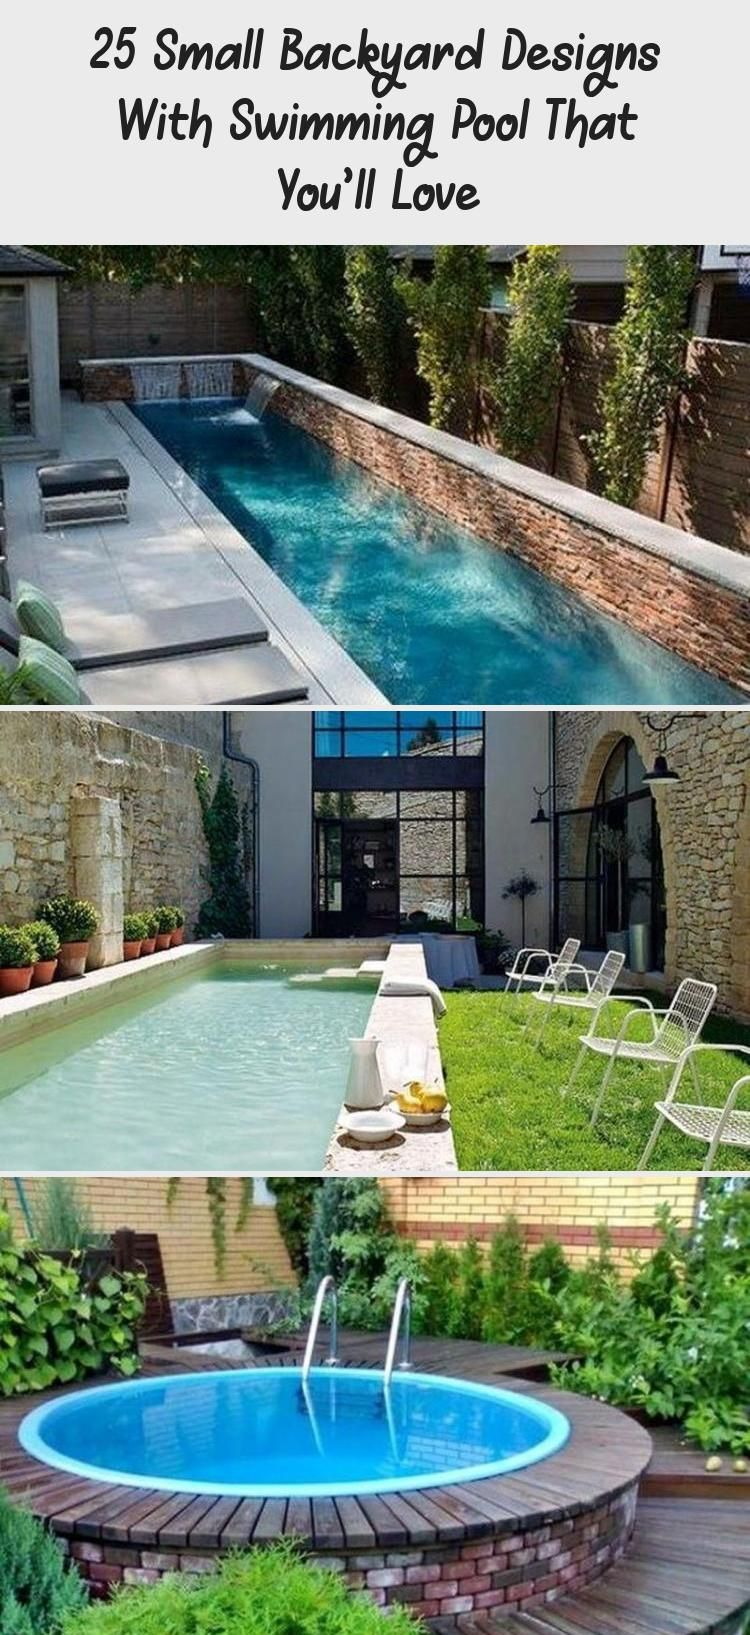 25 Small Backyard Designs With Swimming Pool That You Ll Love Decor Small Backyard Design Small Backyard Modern Backyard Modern backyard ideas with pool